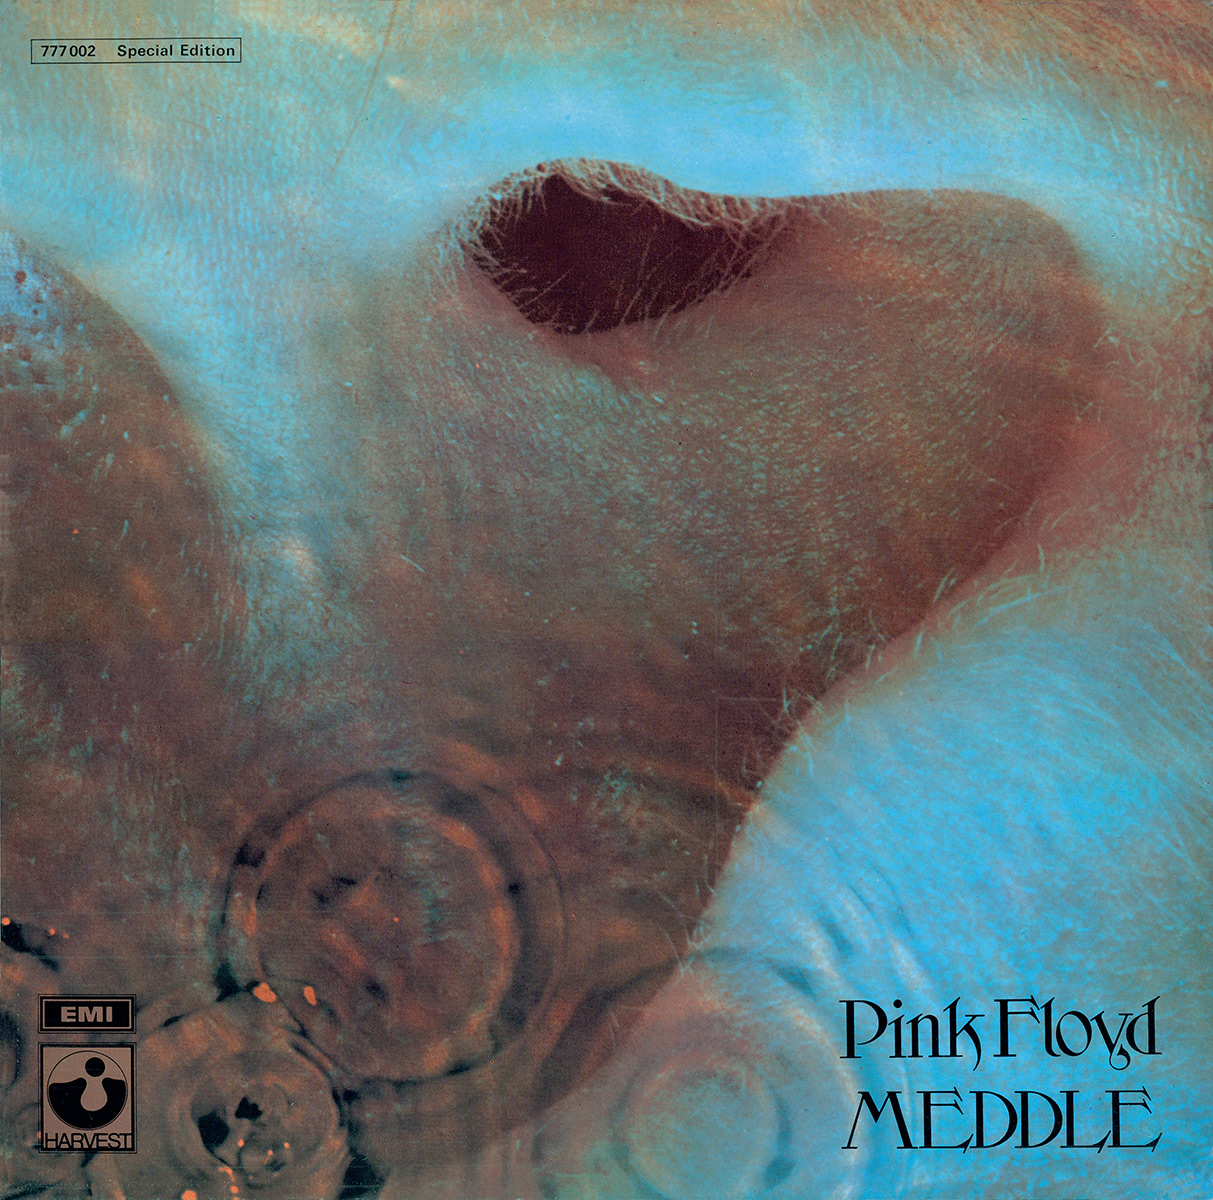 From The Vault: Pink Floyd - Meddle (1971) - It's Psychedelic Baby